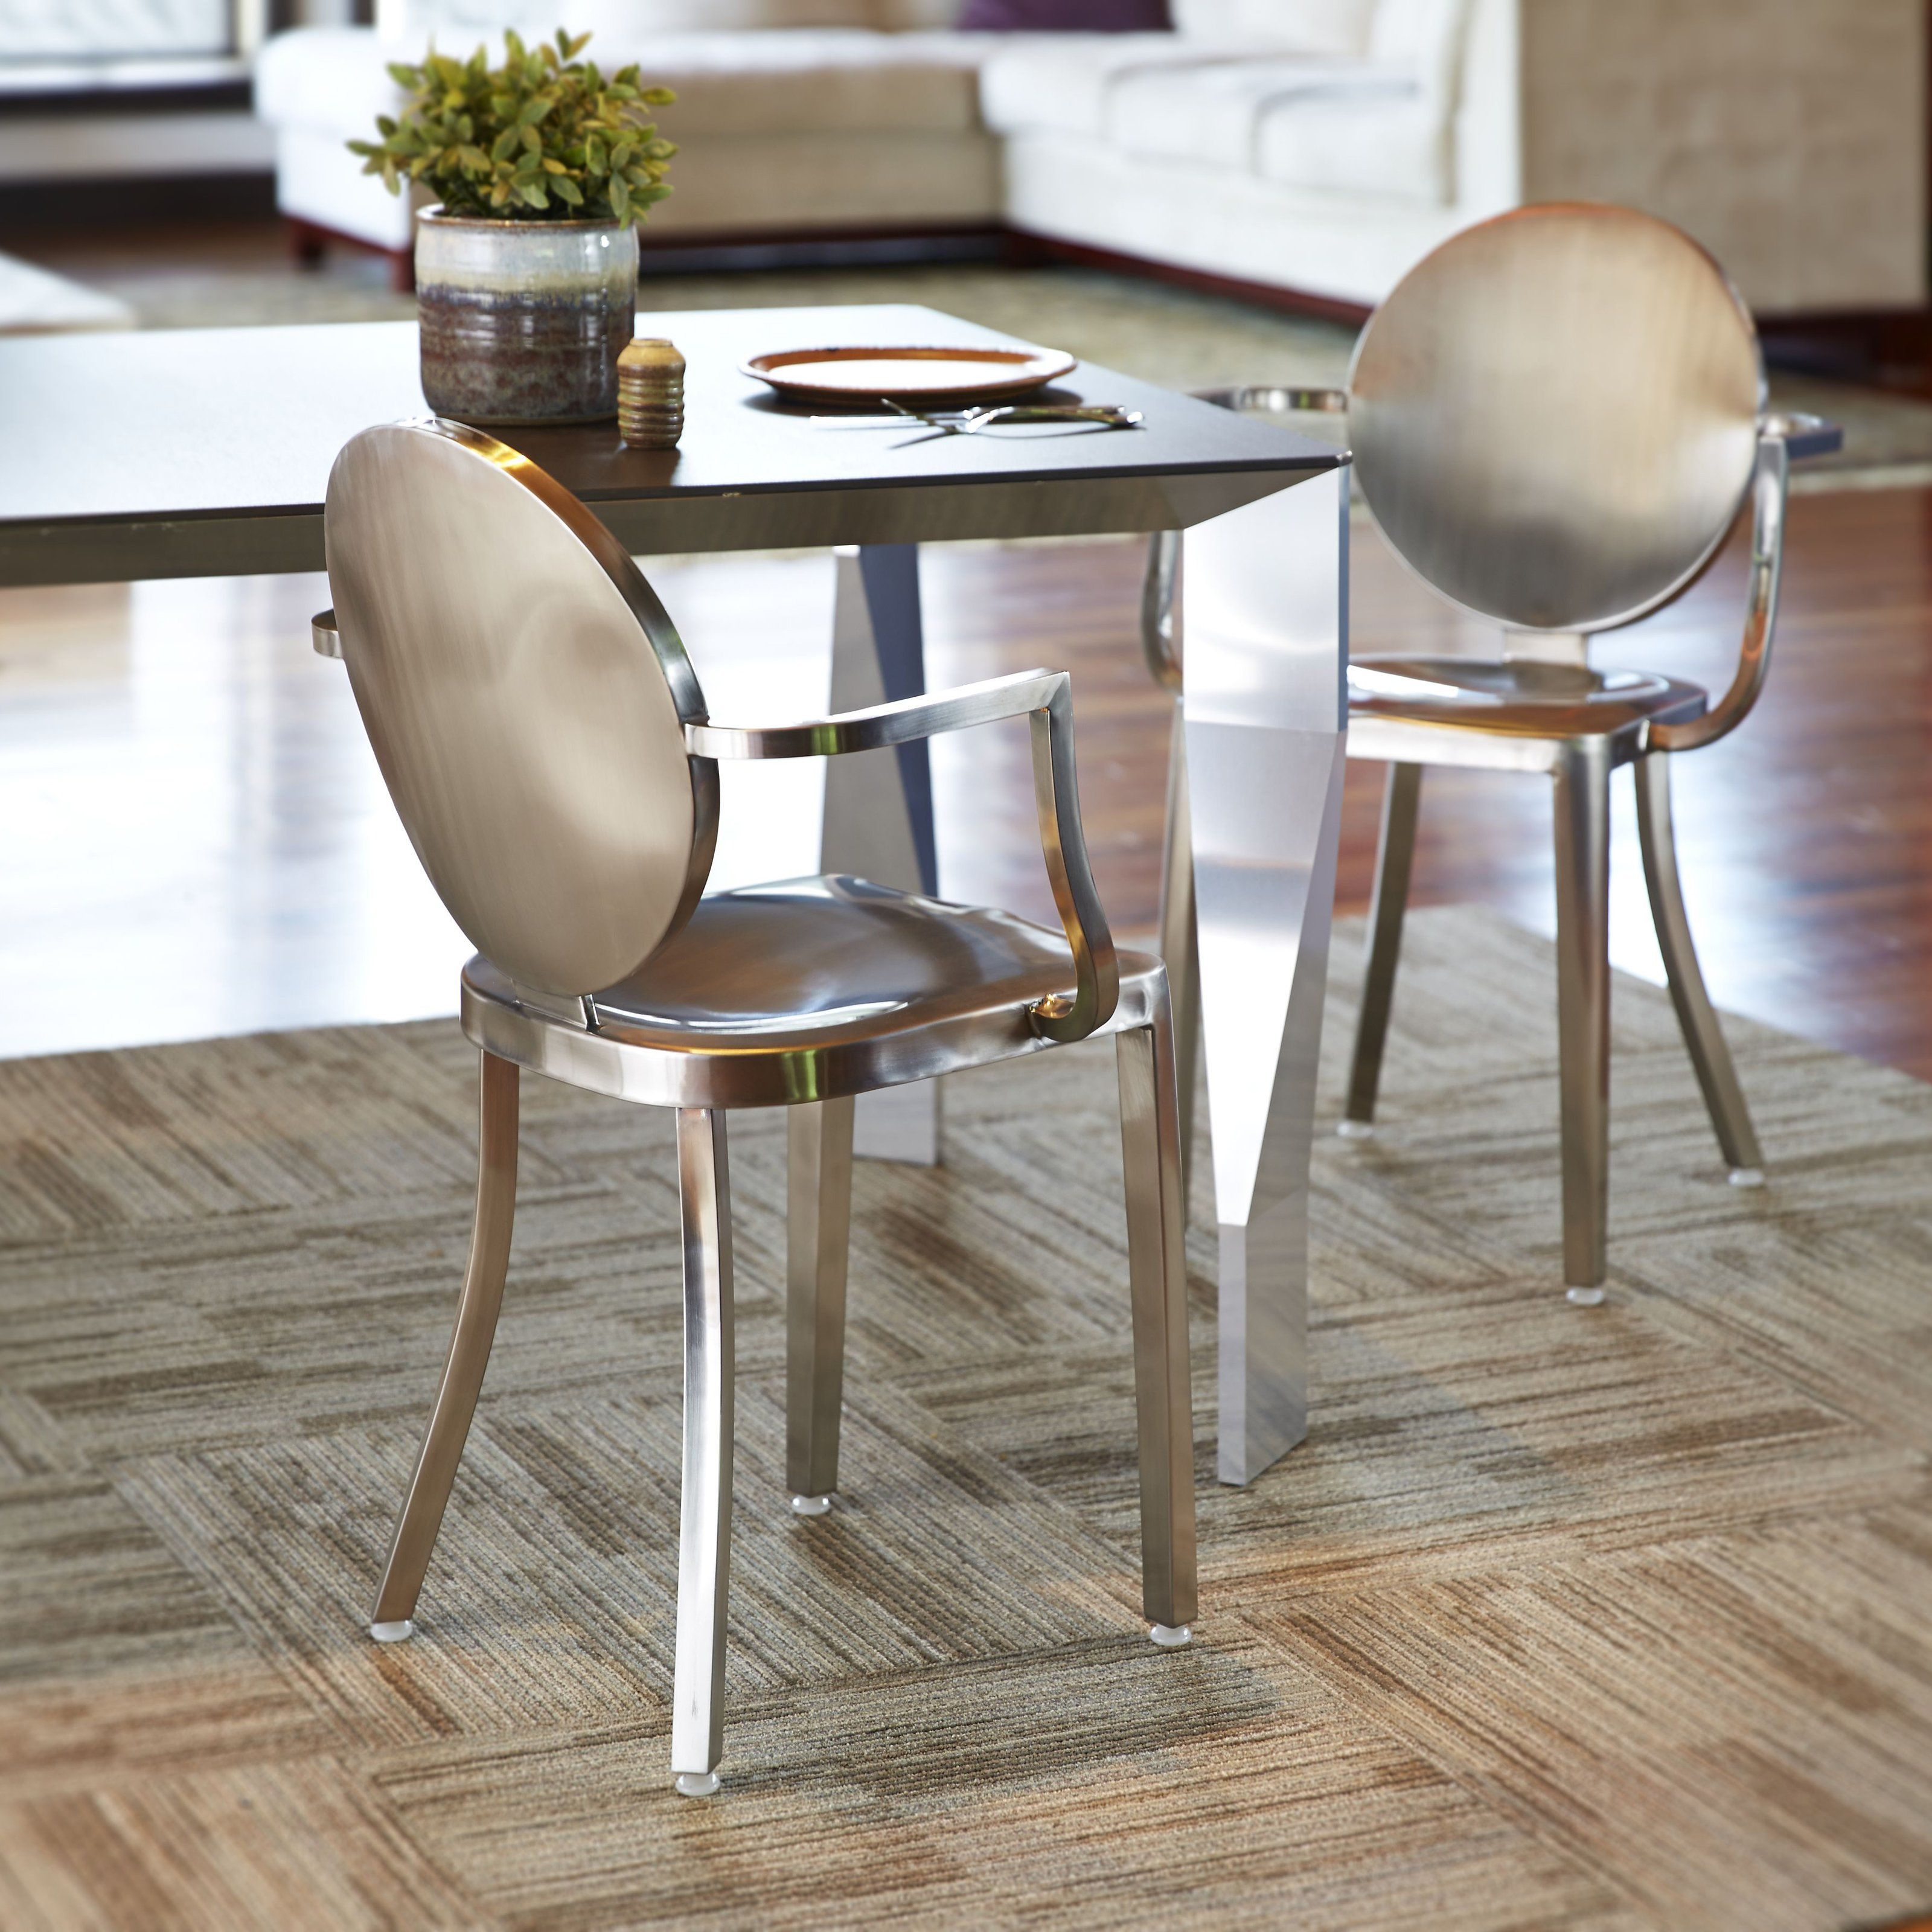 Have To Have It Innerspace Indoor Chair Collection Round Back